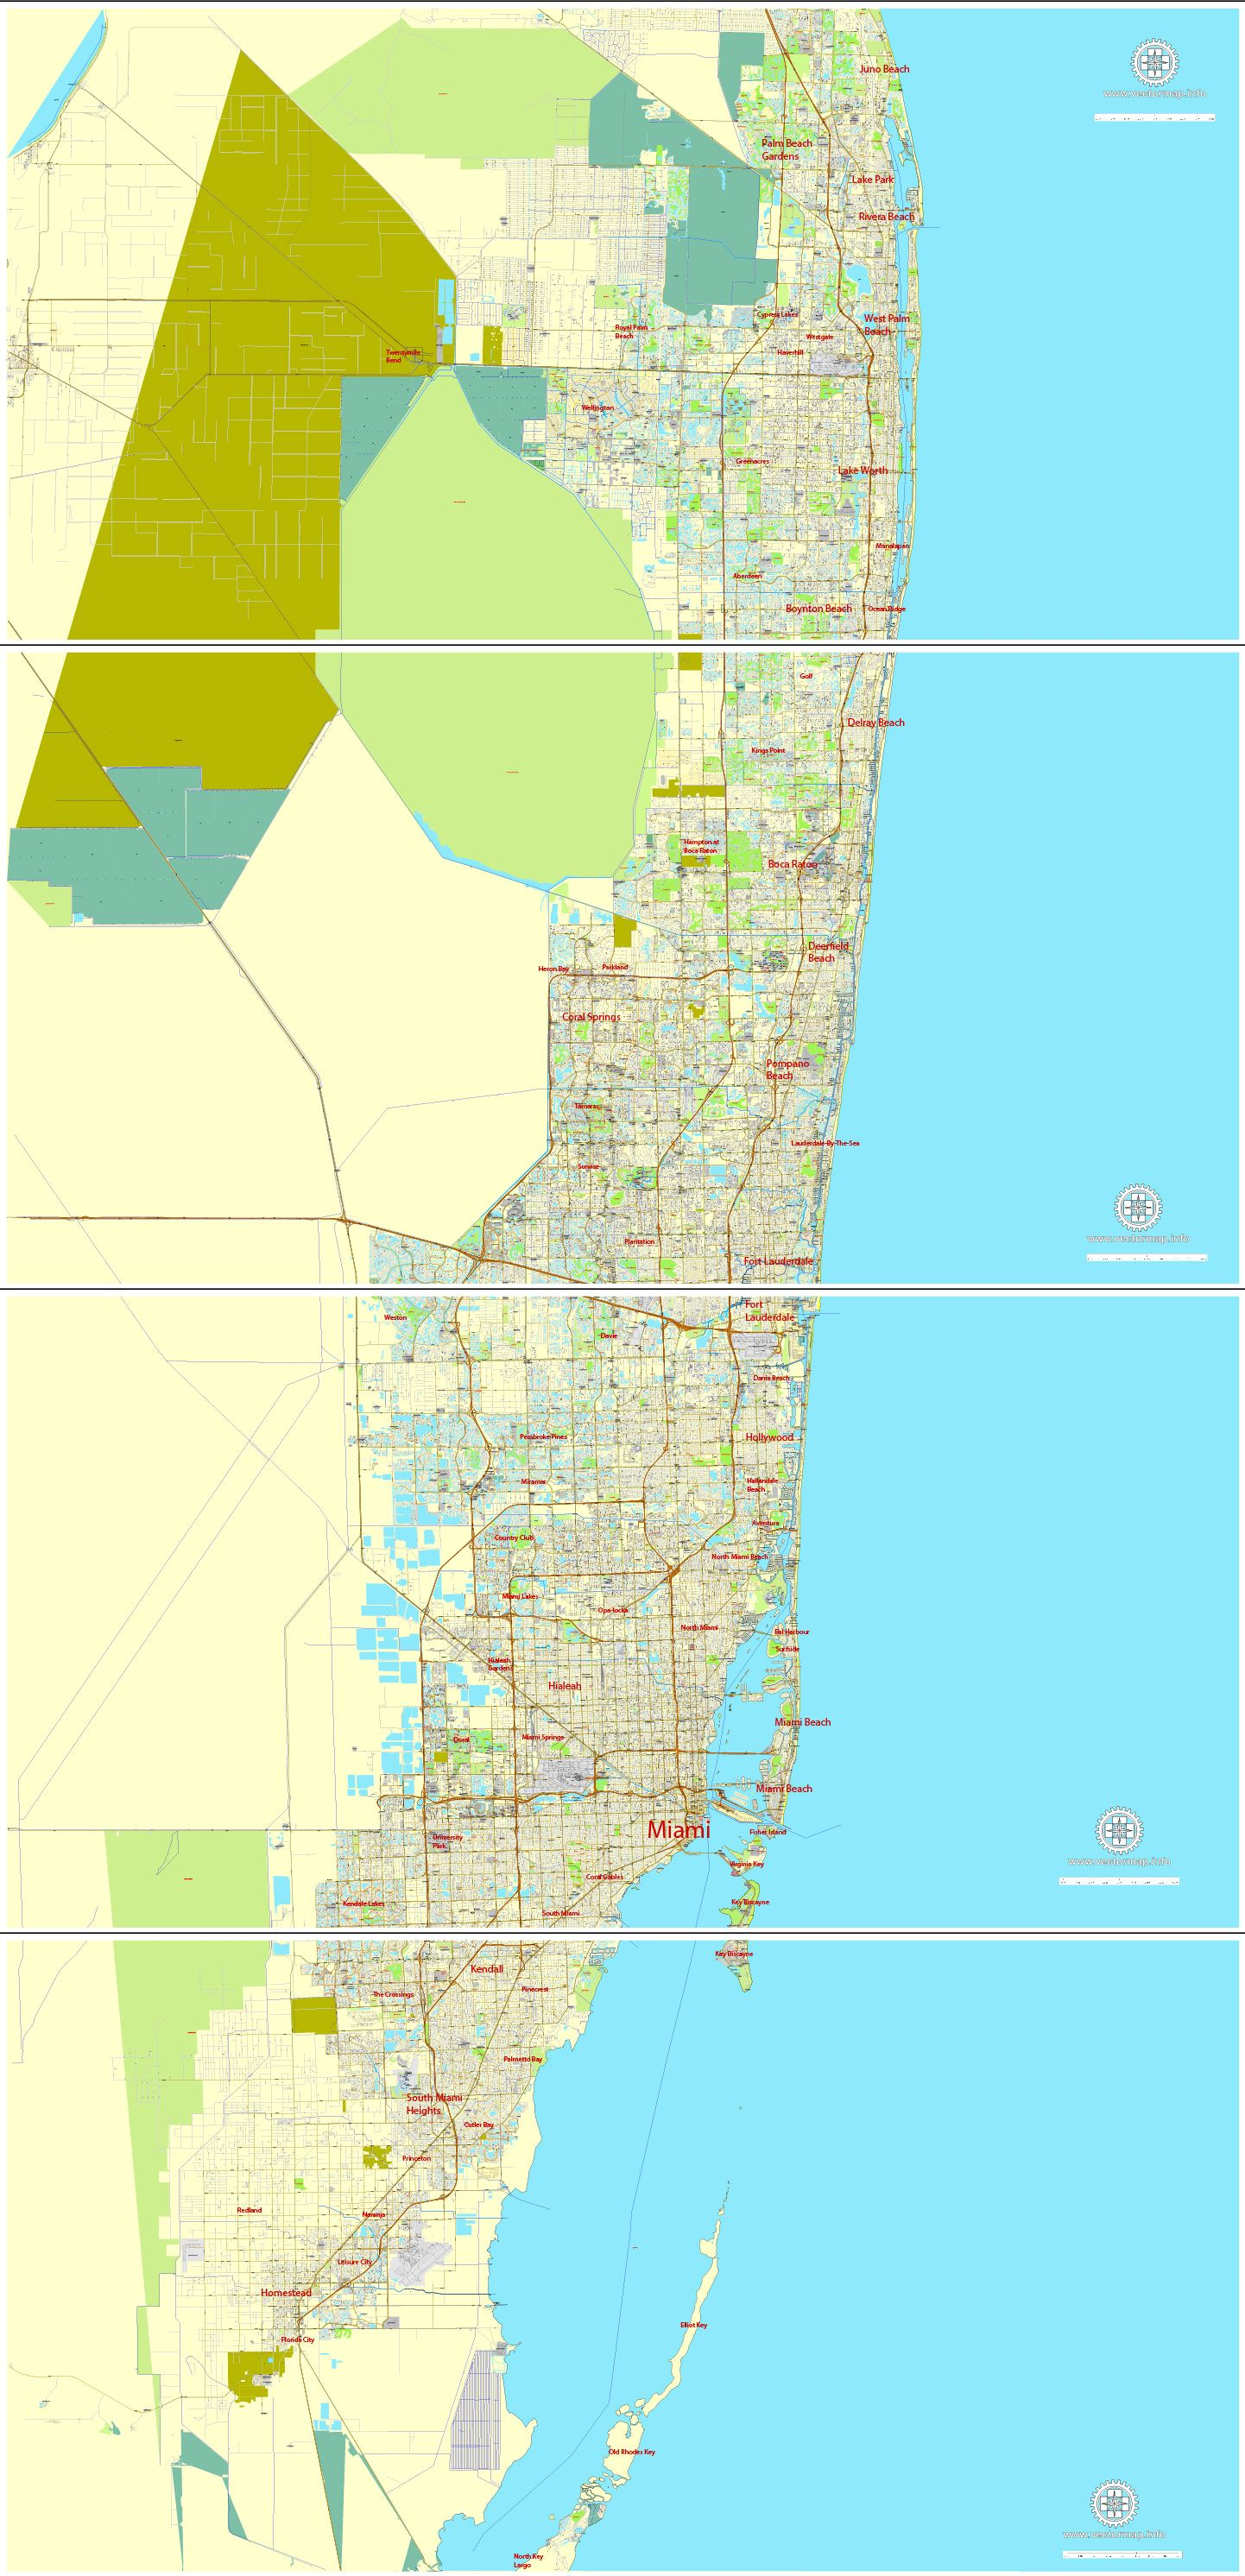 miami pdf map florida us exact vector city plan map in 4